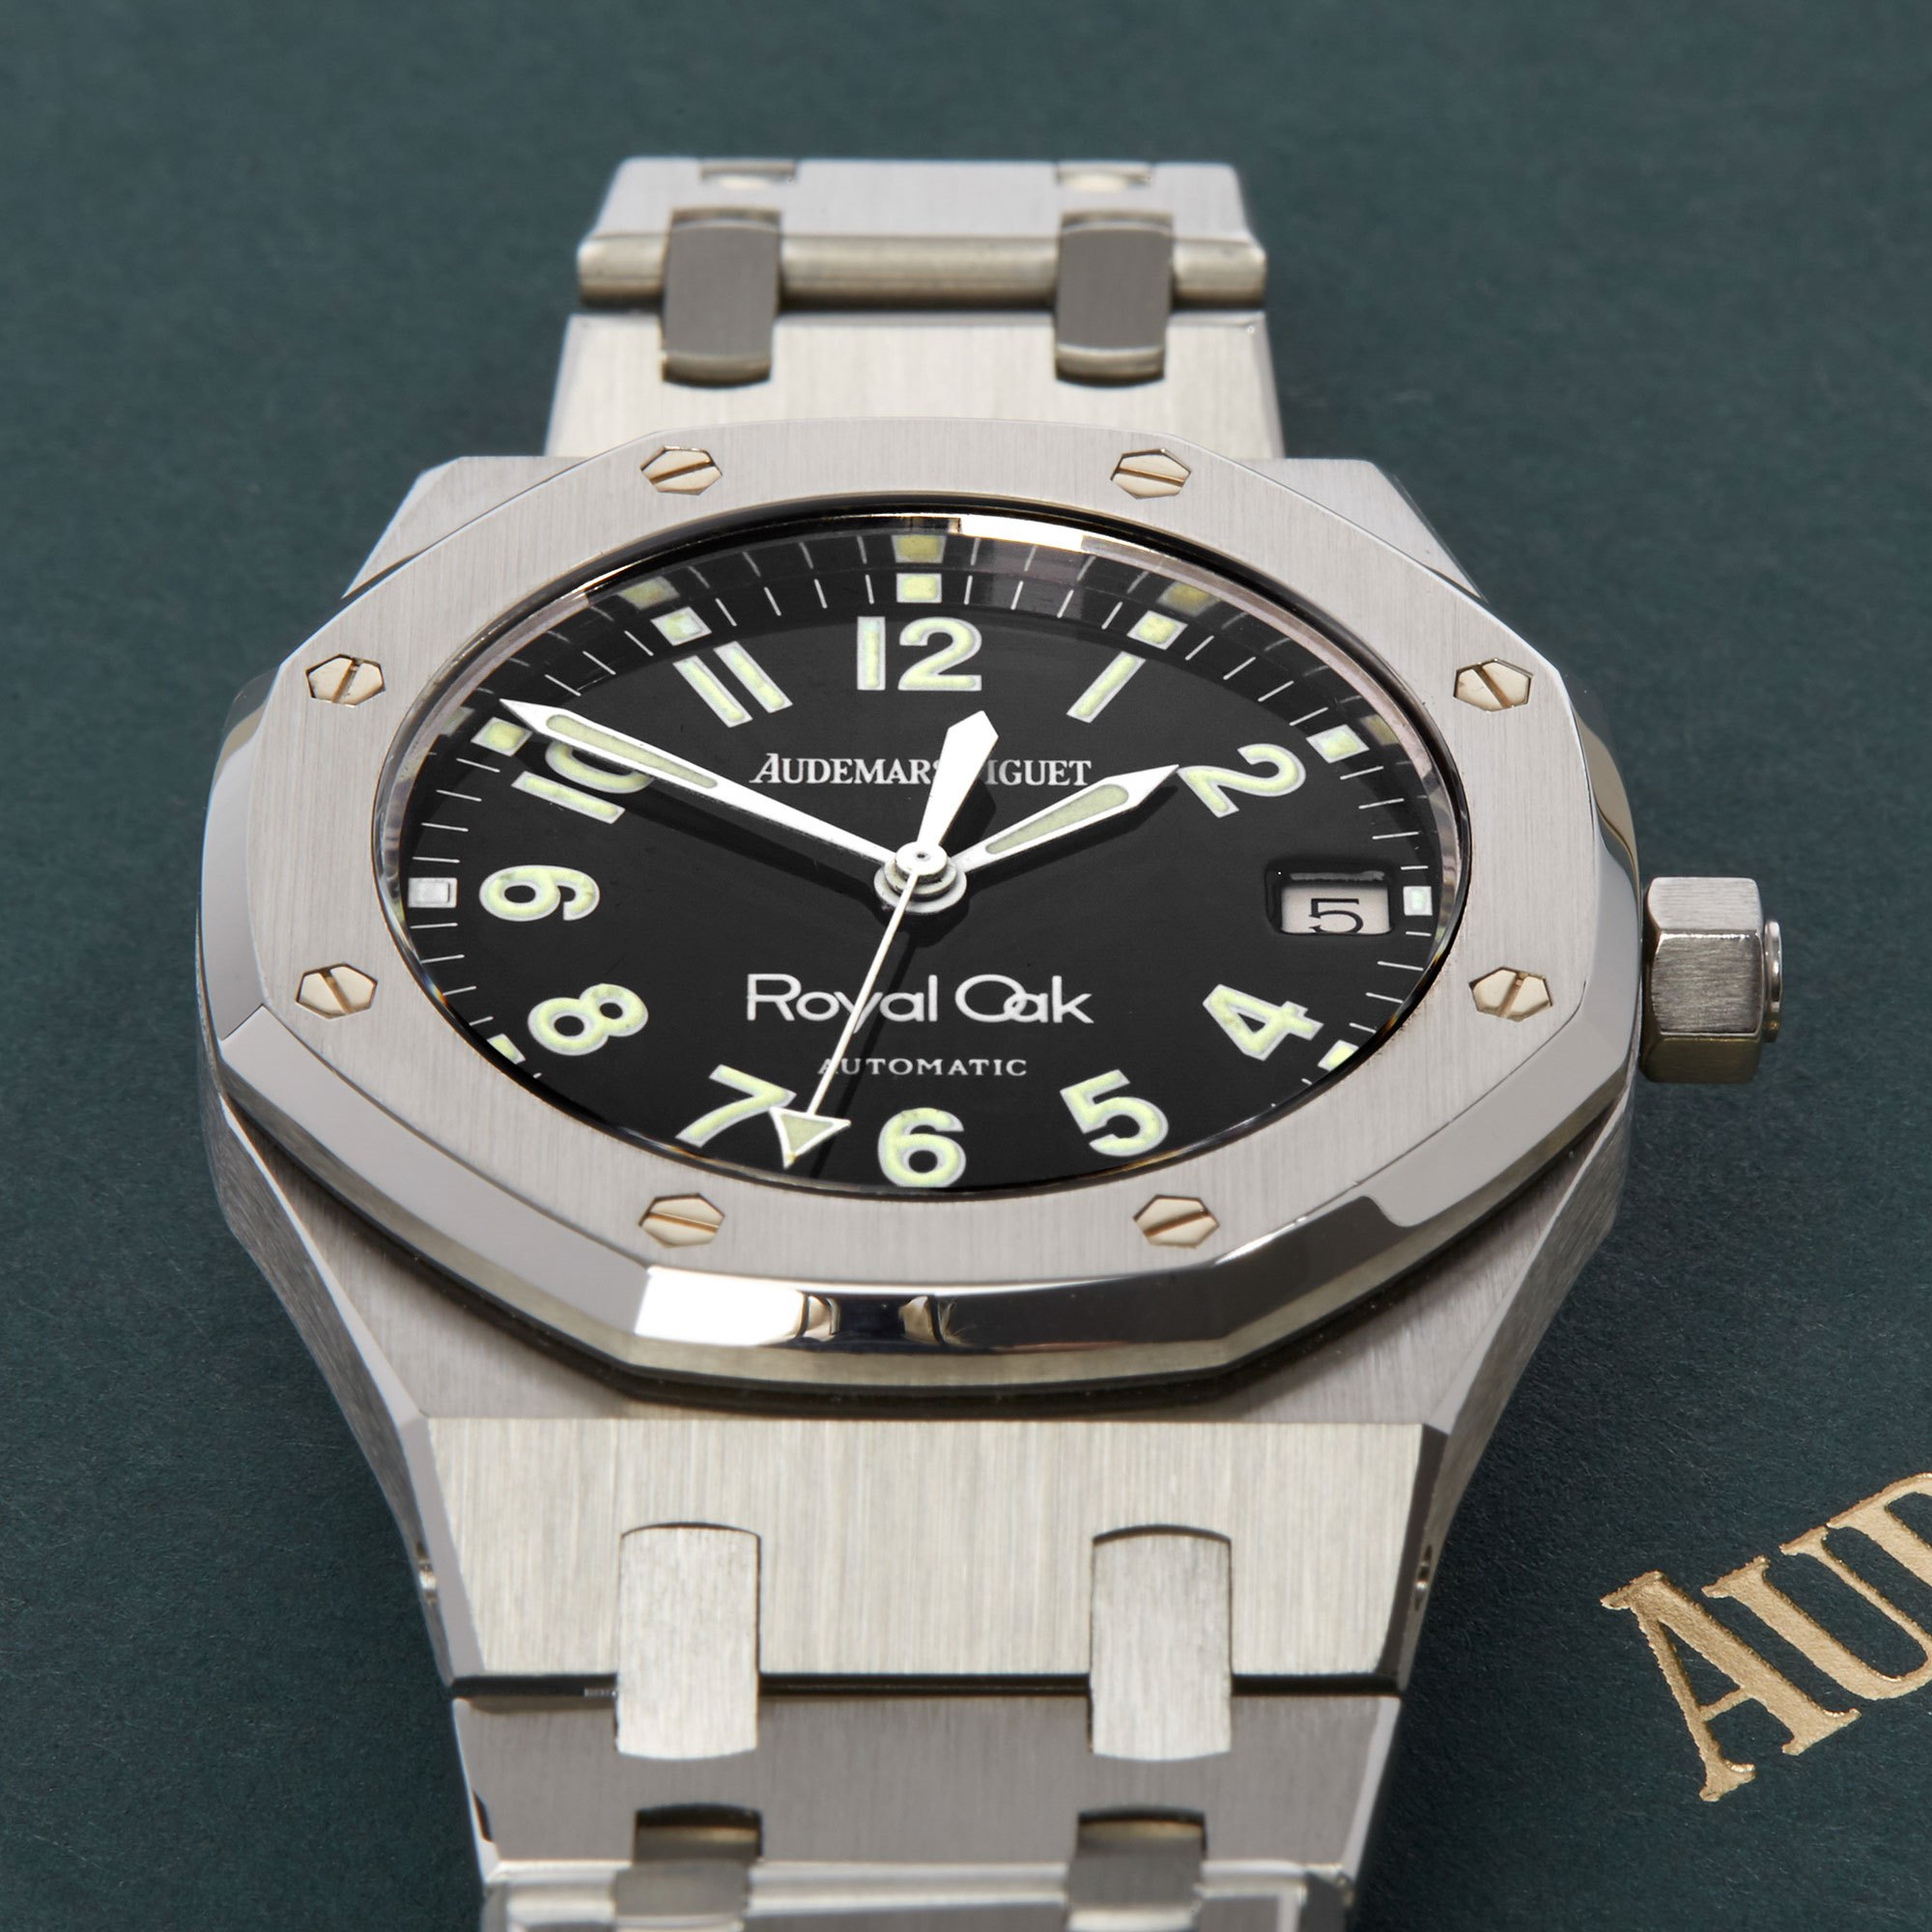 Audemars Piguet Royal Oak Military Dial NOS Stainless Steel - 14790ST Roestvrij Staal 14790ST